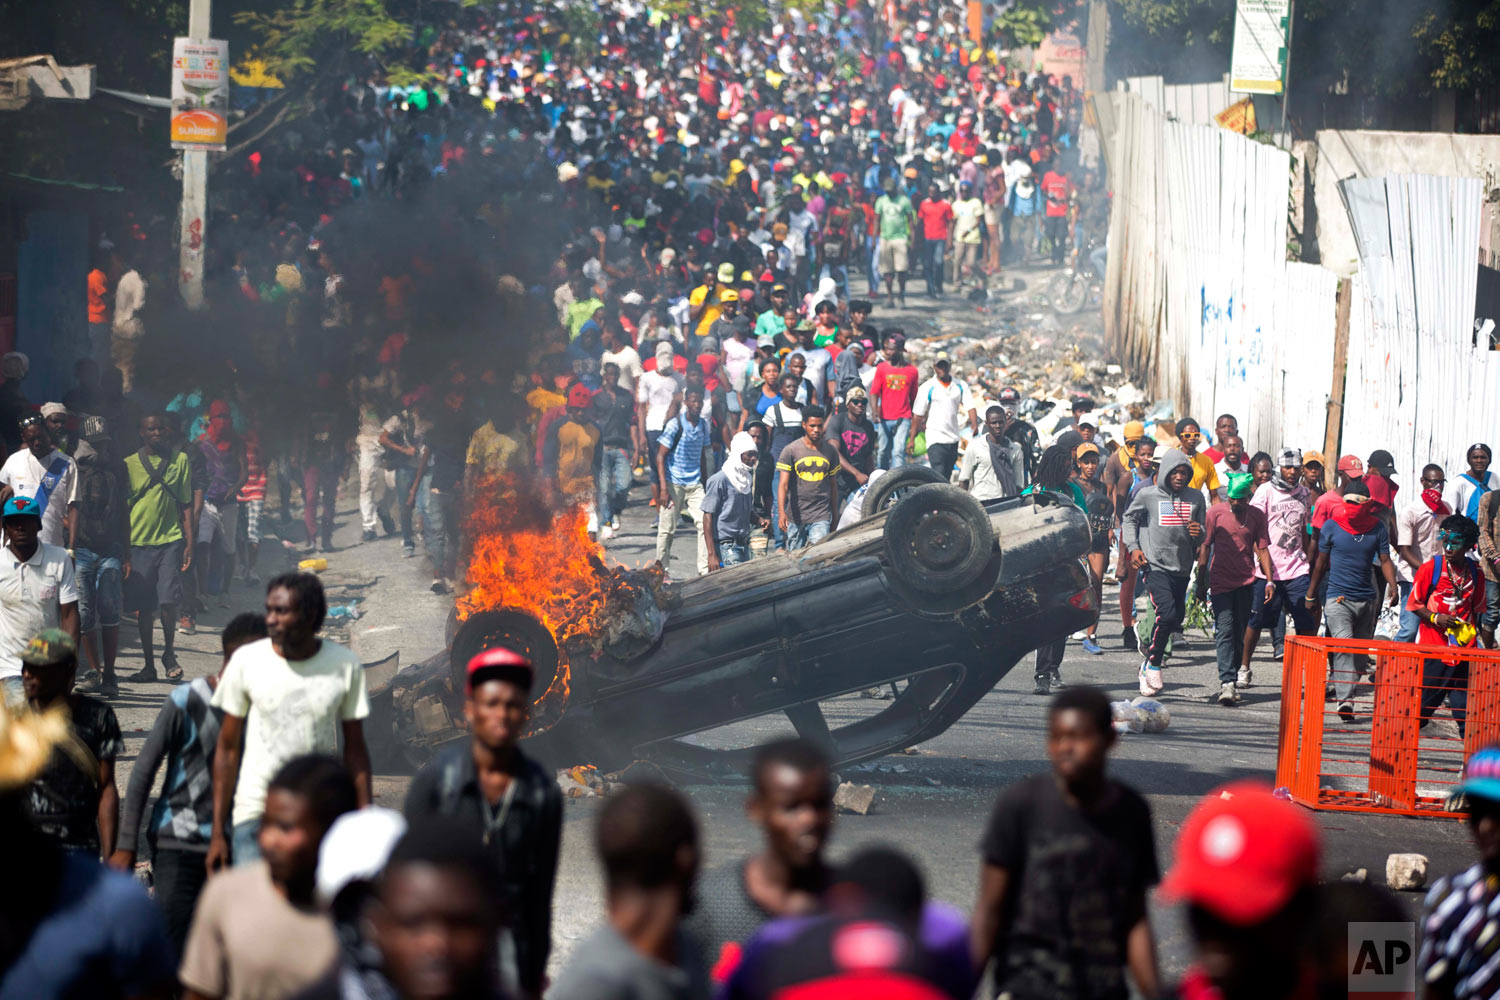 Protesters march past an overturned burning car, as they demand the resignation of Haitian President Jovenel Moise in Port-au-Prince, Haiti, Feb. 12, 2019. (AP Photo/Dieu Nalio Chery)